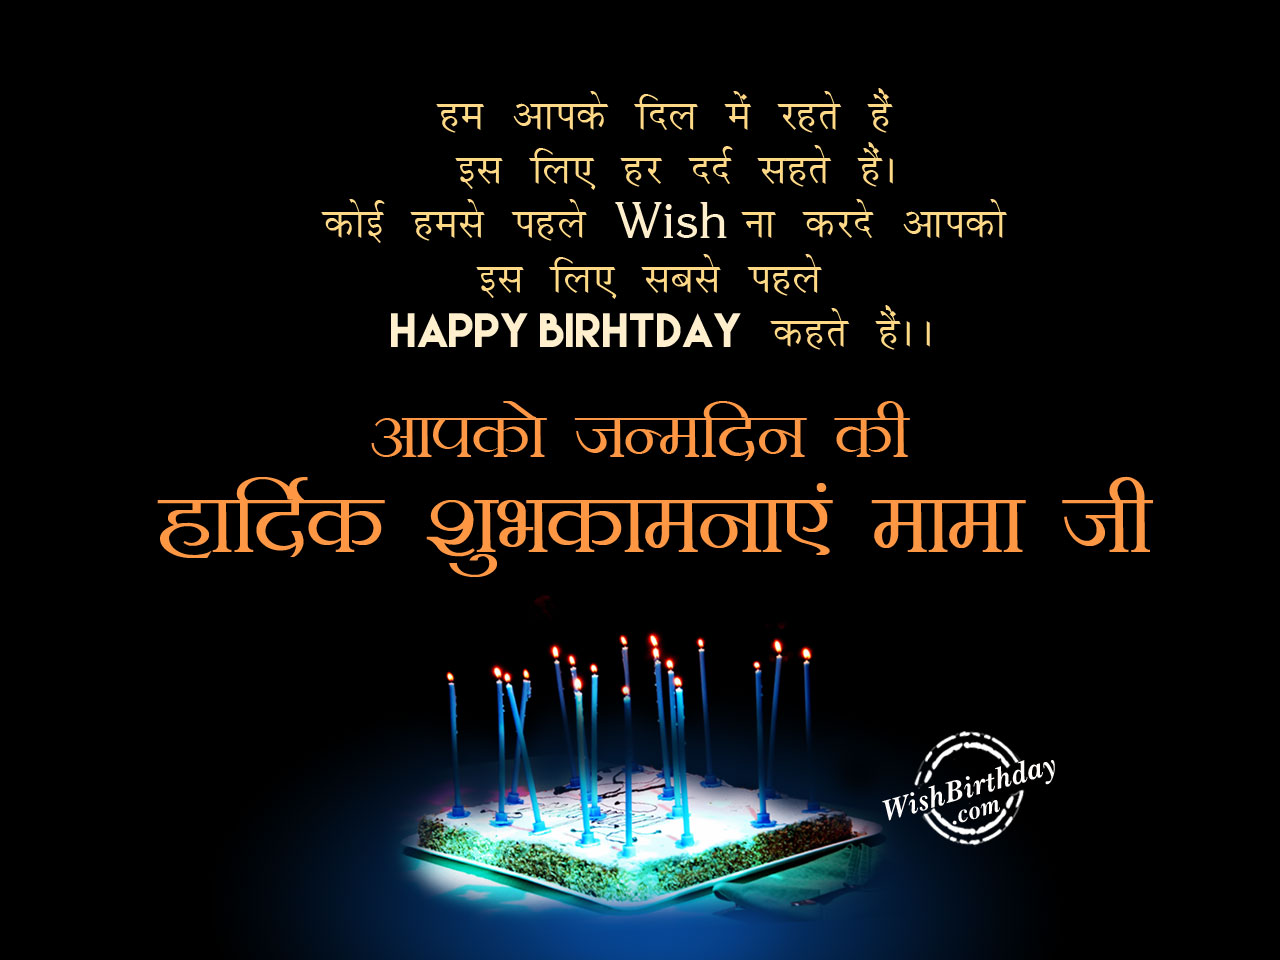 Birthday wishes for mama ji birthday images pictures wishing you r special day may be joyfulmama ji m4hsunfo